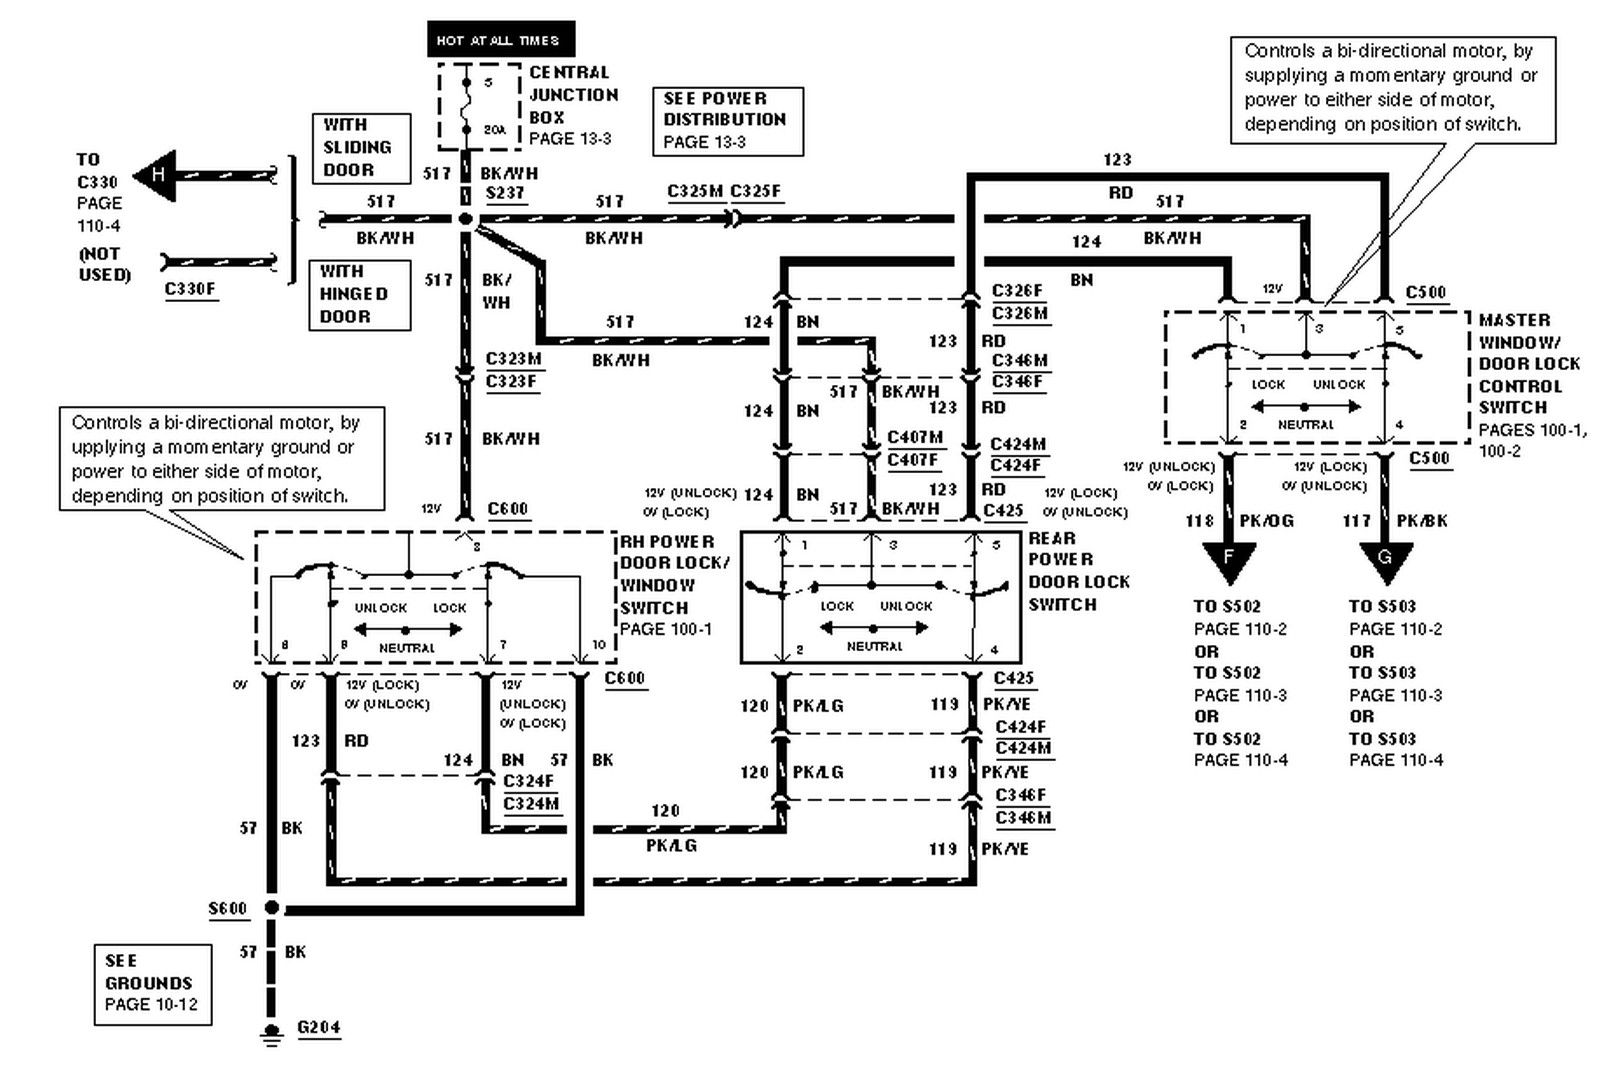 80 2010_11_05_235941_99_e_350_power_door_lock_wiring_diagram_e574233ae37af9677ff5fddb790386a28f9dd7ad factory trailer wiring harness ford truck enthusiasts forums 2005 Ford E350 Starter Wiring Circuit at reclaimingppi.co